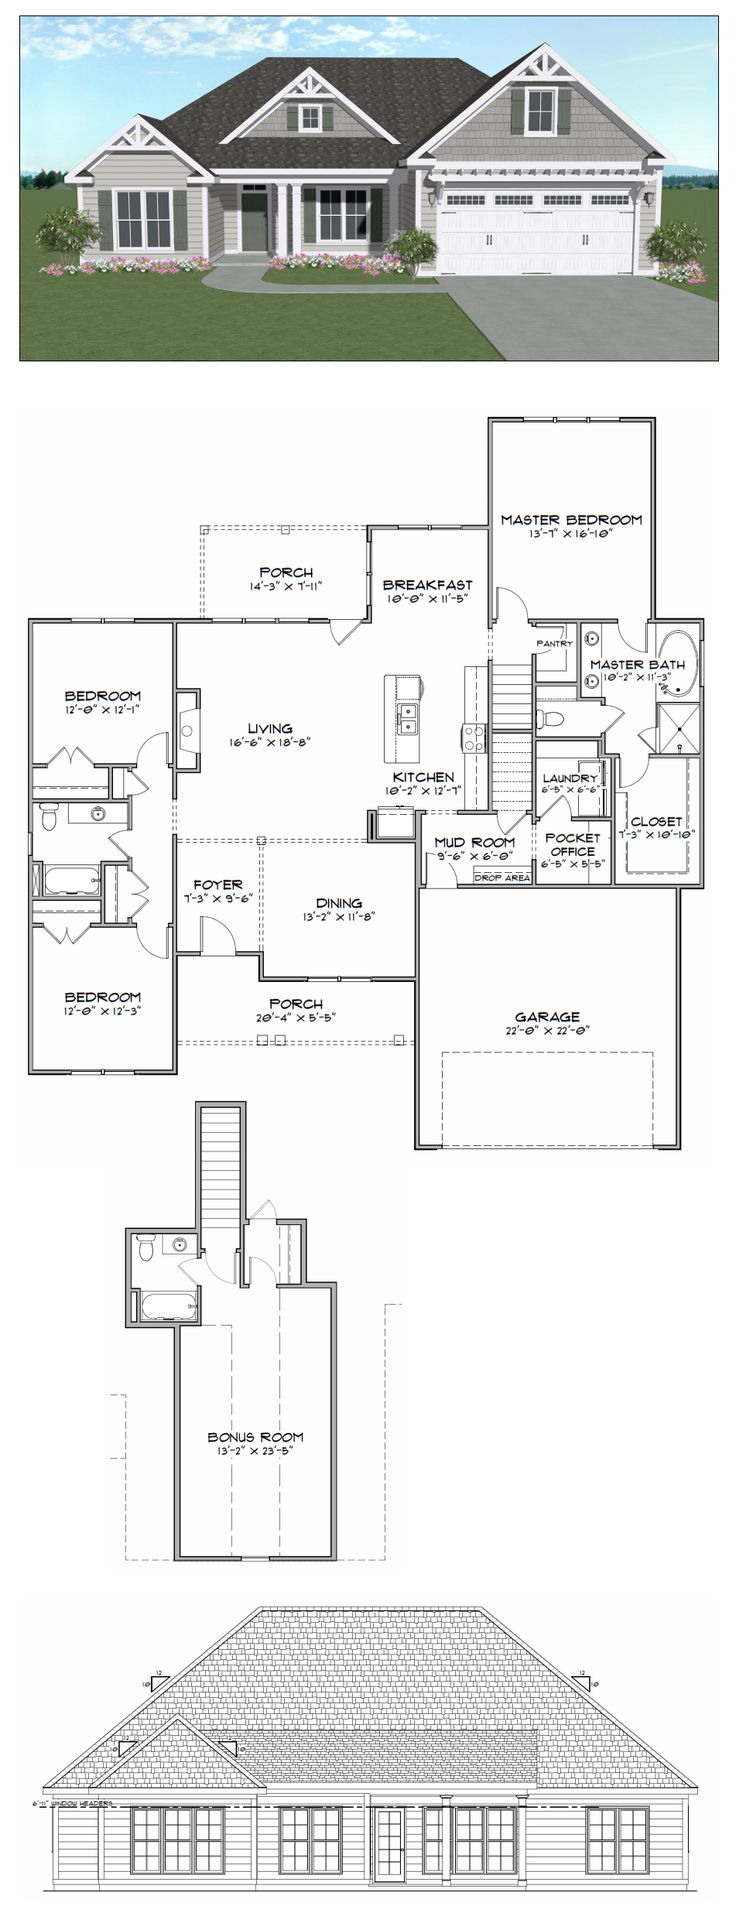 19 best house plans 2000 2800 sq ft images on pinterest for 2000 sq ft house plans